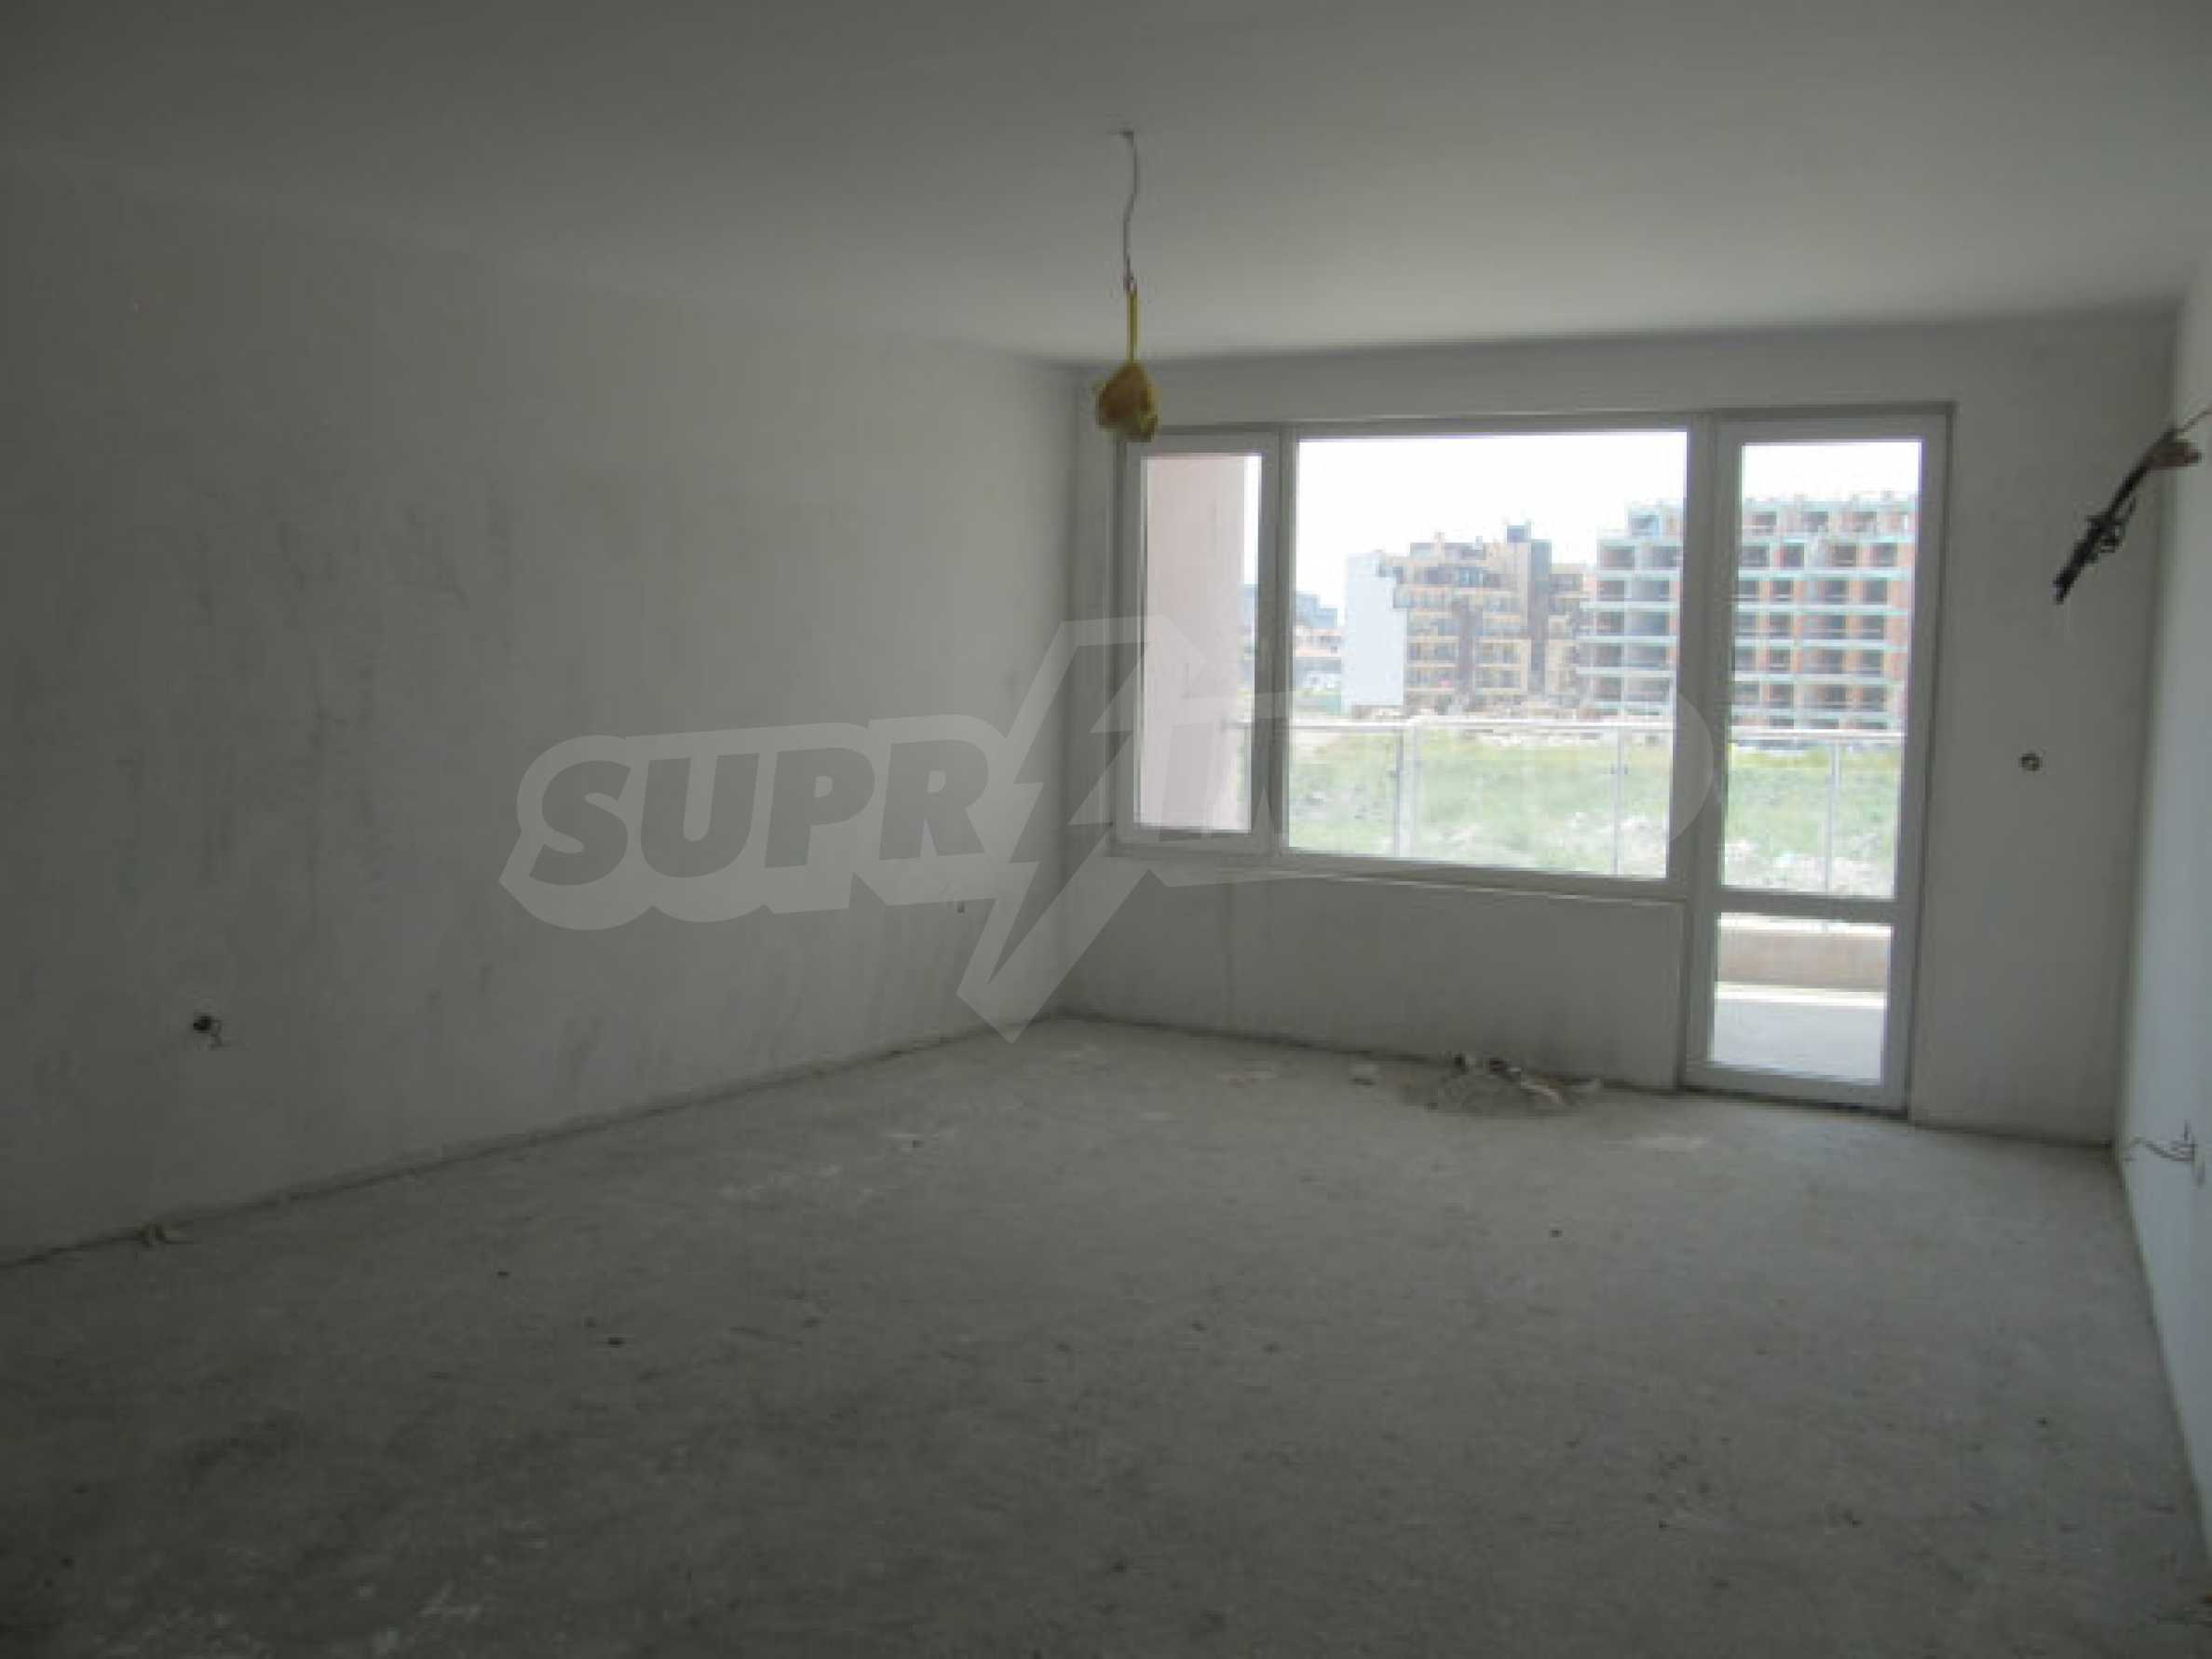 Apartments for sale in a new building in Pomorie 10